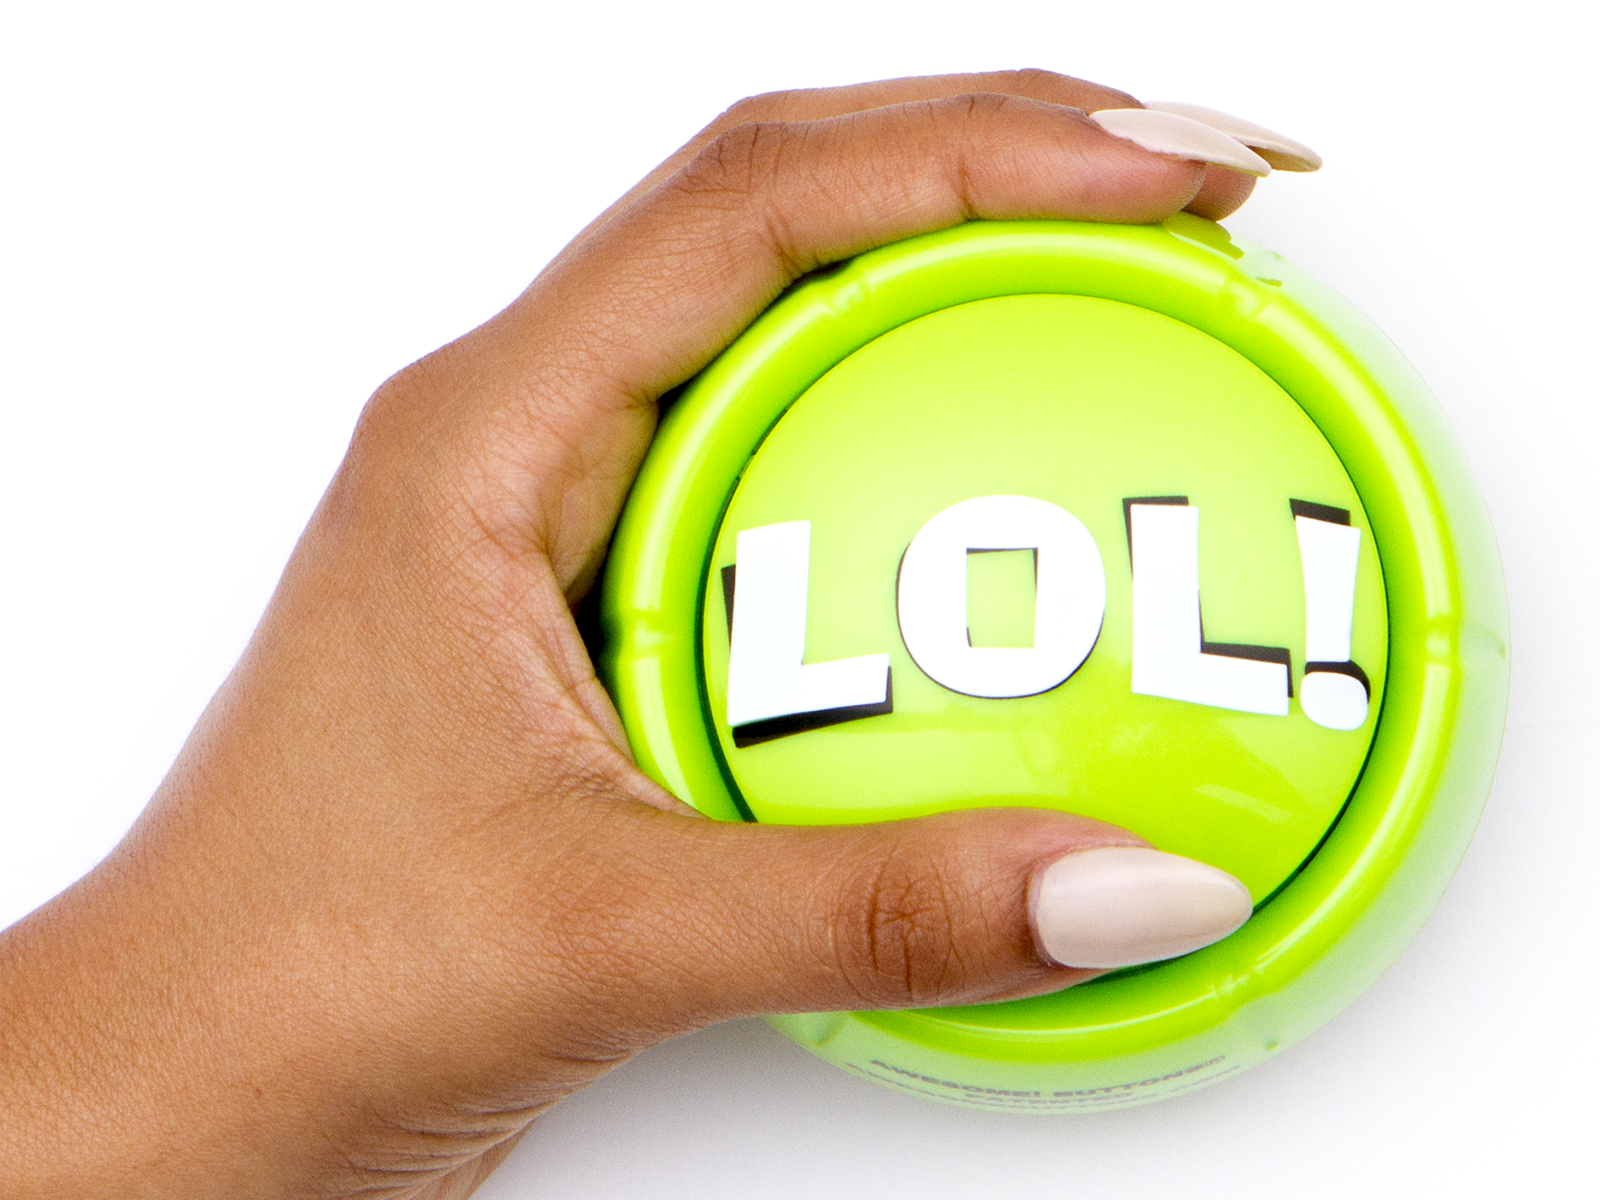 Collect the LOL! button today at http://Awesomebuttons.com/lol-button-hilarious-and-unique-audio-desk-top-fun You'll love these desk toys!